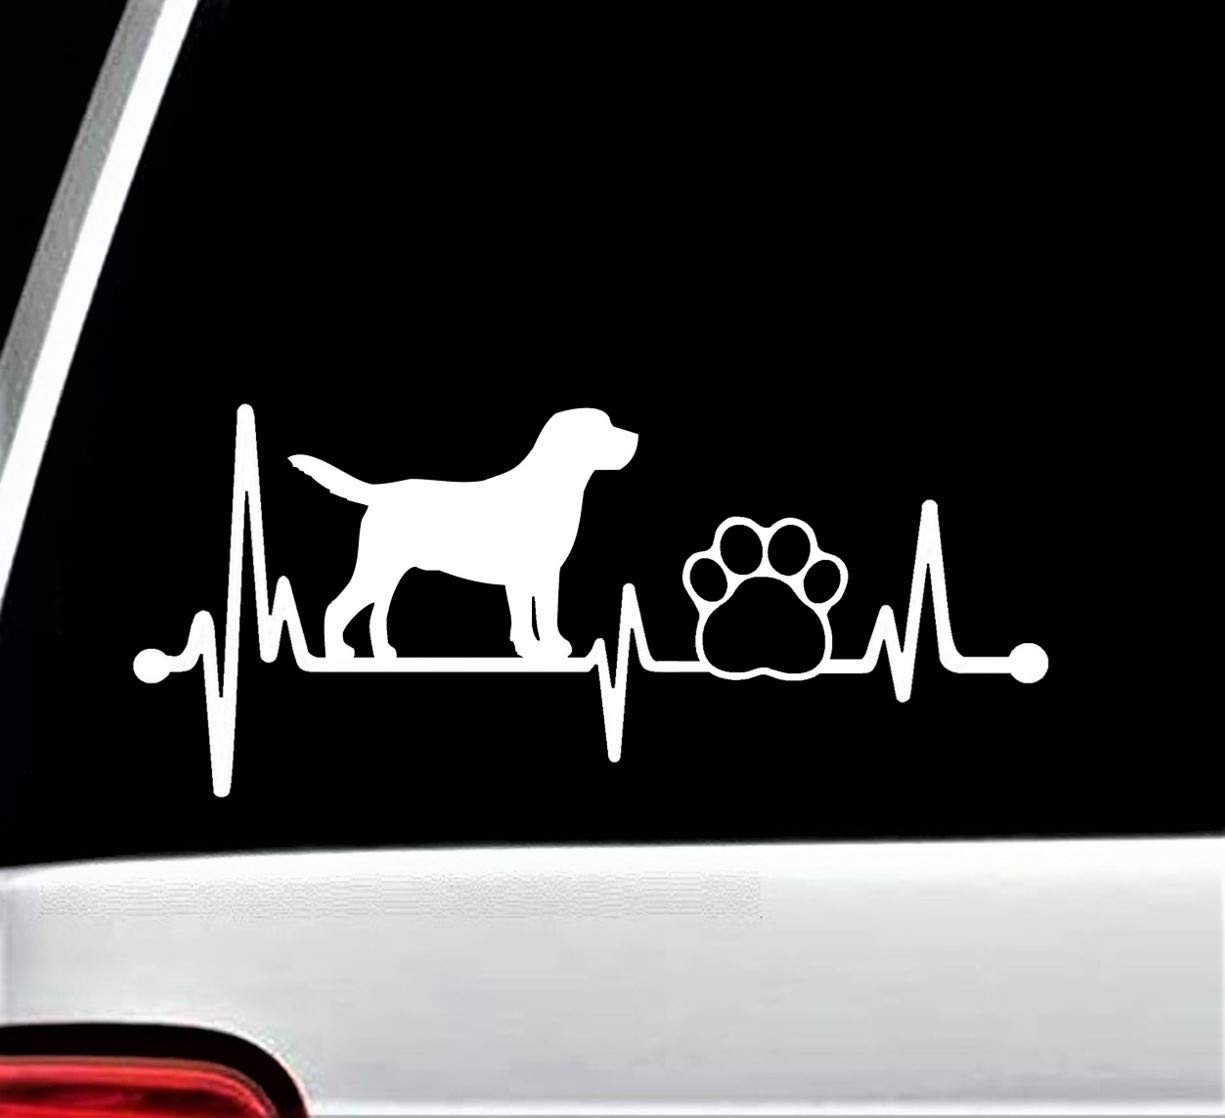 Lab Labrador Retriever Heartbeat Paw Lifeline Decal Sticker for Car Window 8 Inch BG 135